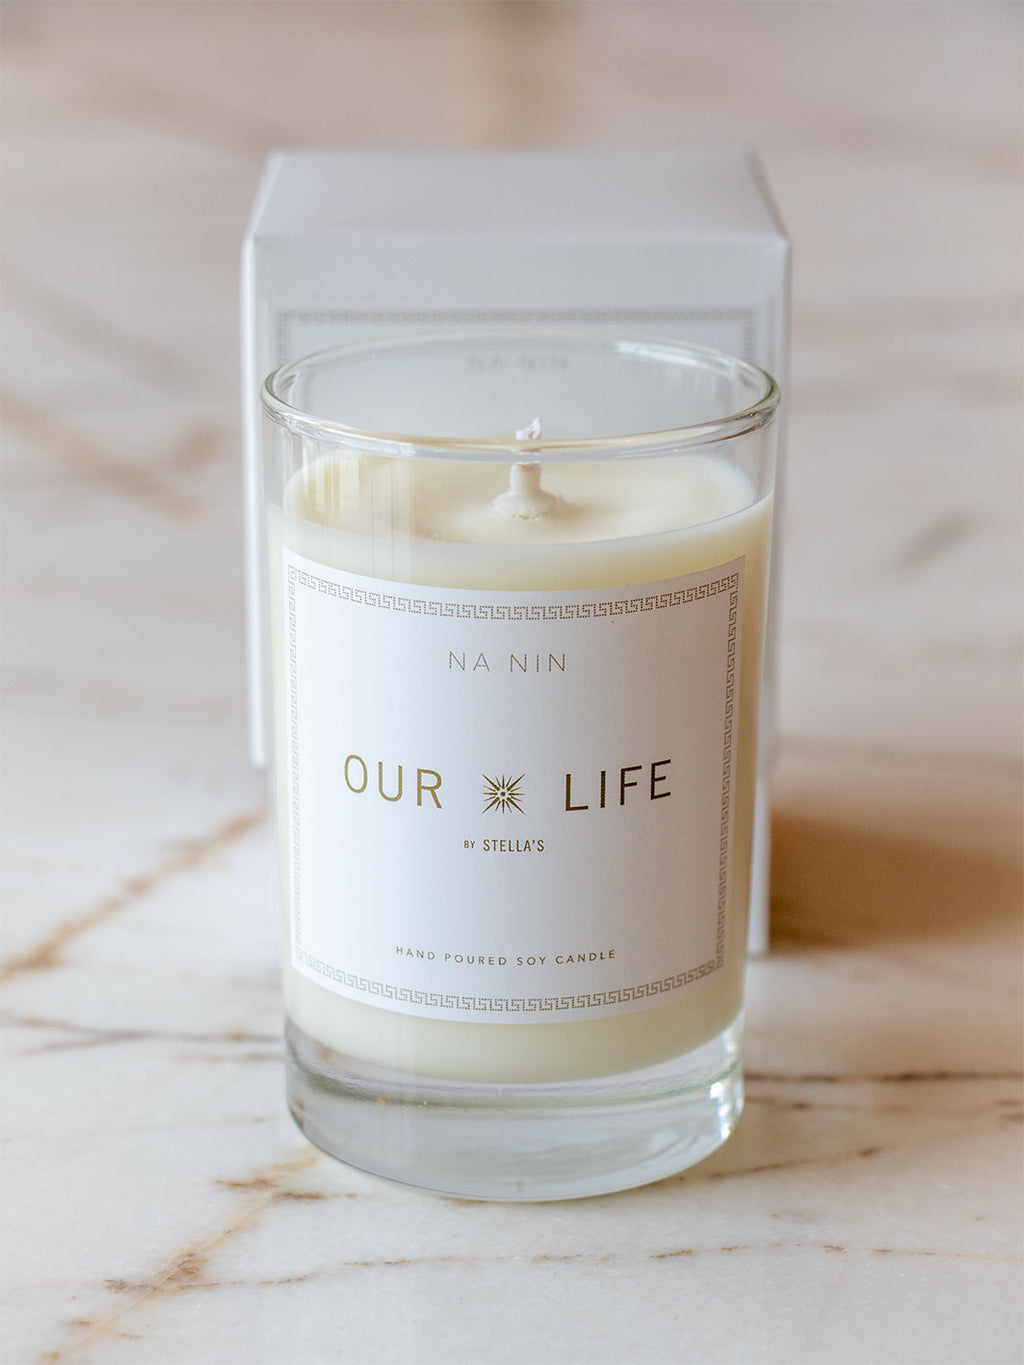 Na Nin x Our Life Candle 5oz